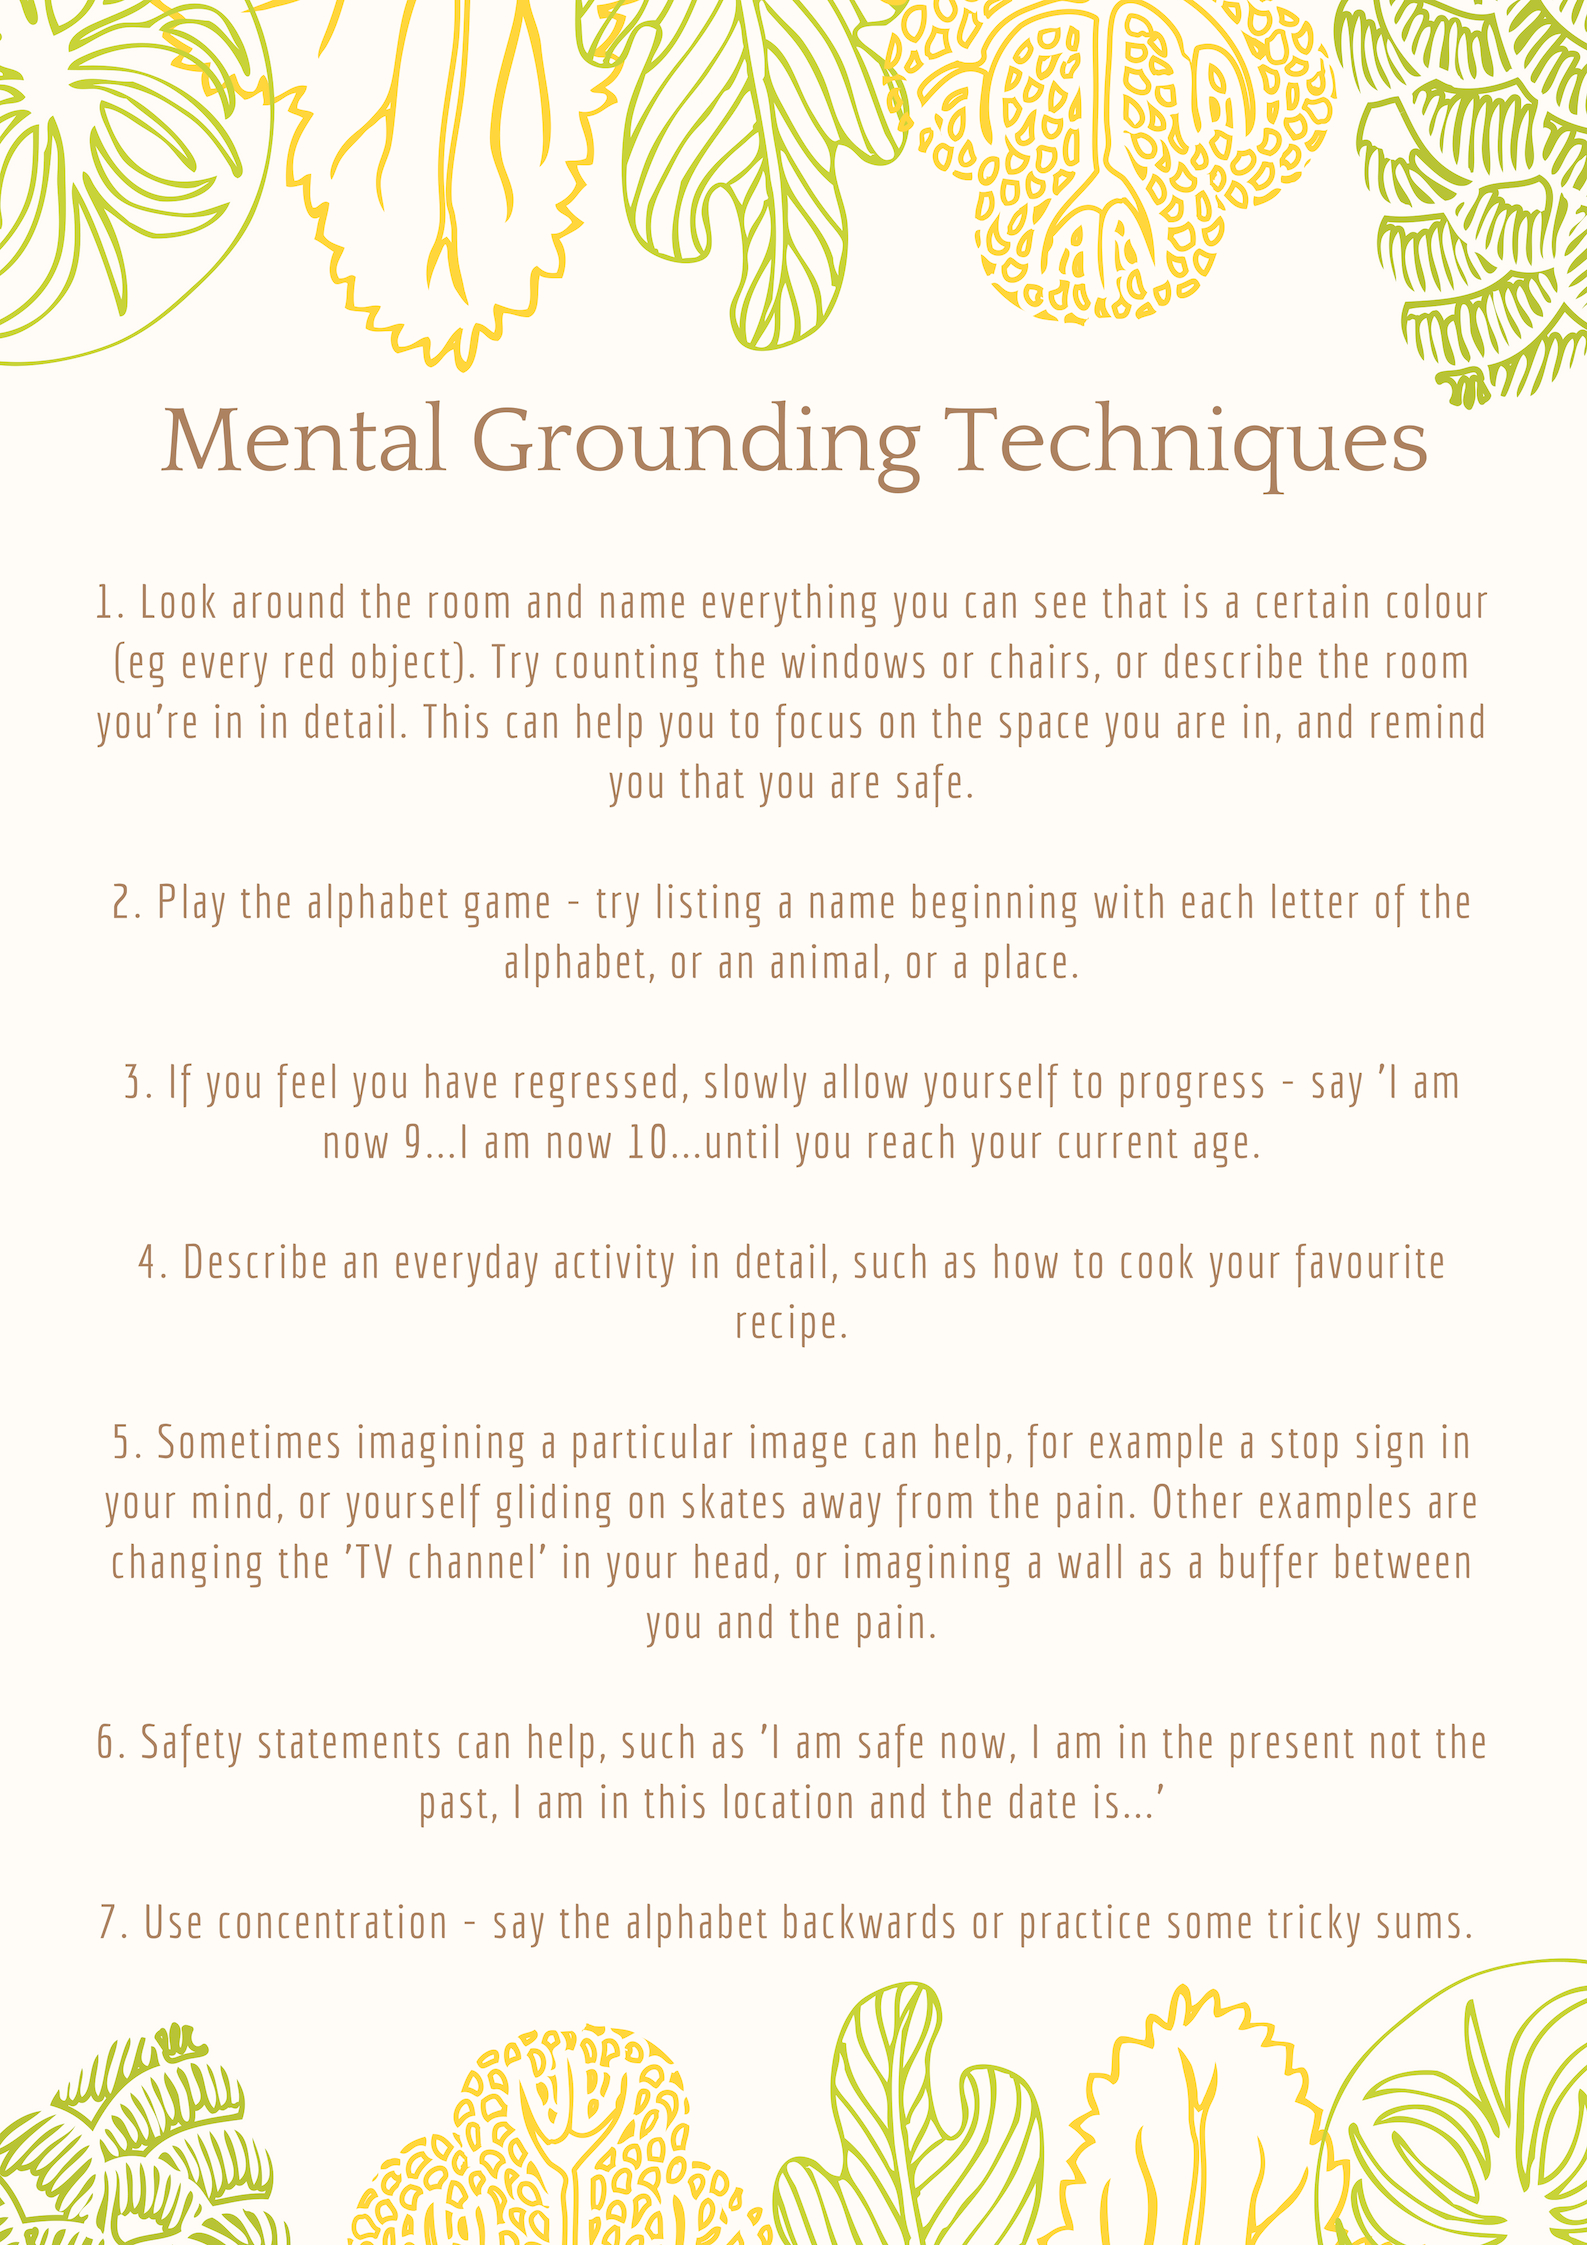 Mental Grounding Techniques Poster